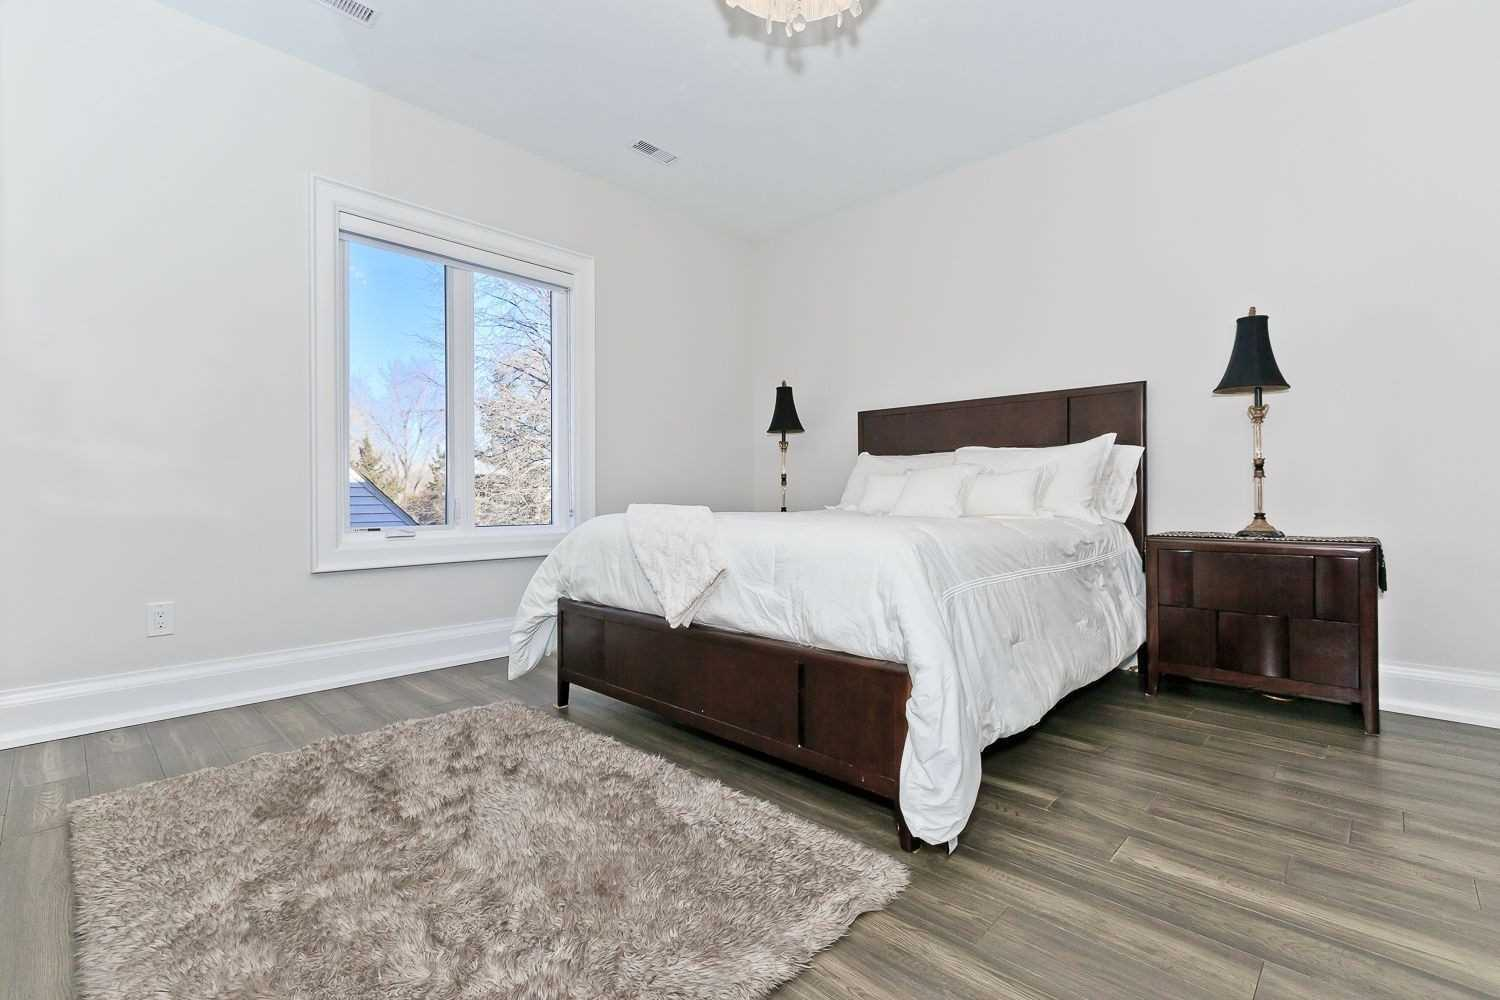 1160 Greening Ave, Mississauga, Ontario L4Y1H5, 4 Bedrooms Bedrooms, 11 Rooms Rooms,4 BathroomsBathrooms,Detached,For Sale,Greening,W5163209